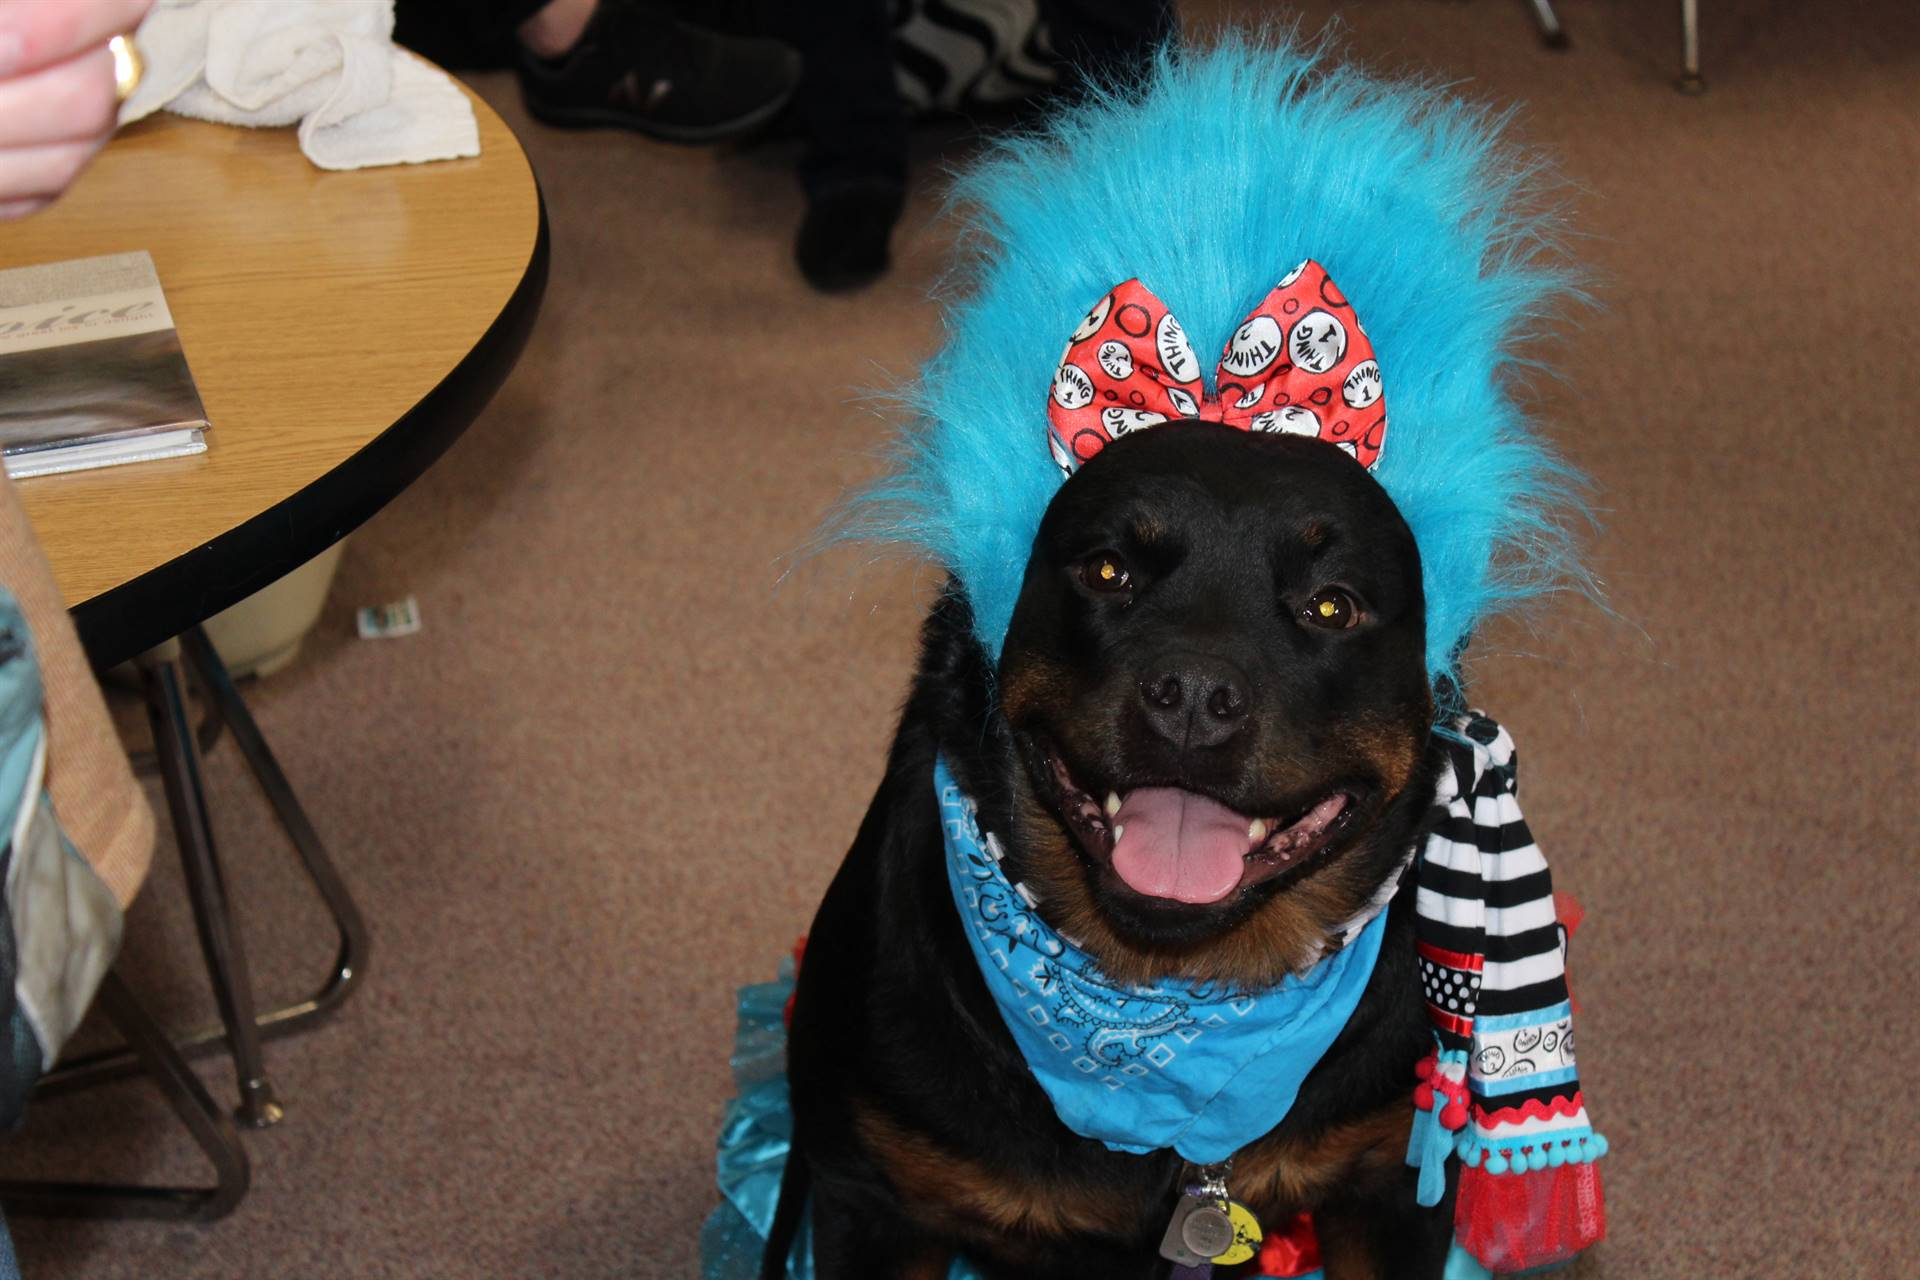 Rescue dog dressed as Thing 1